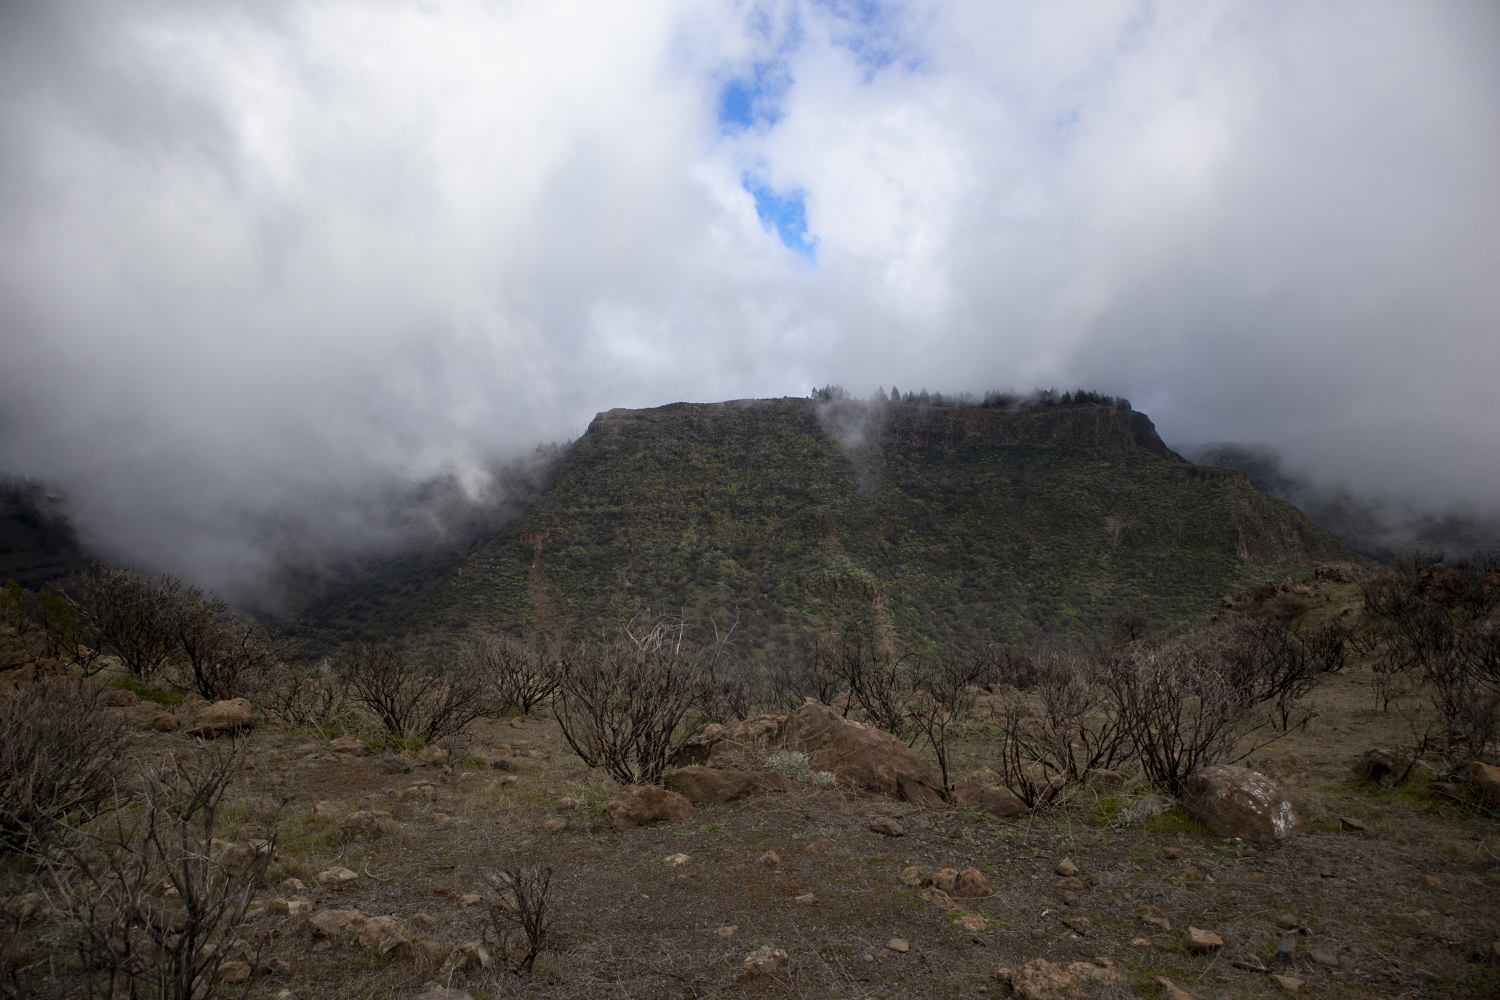 Clouds are gathering over the Barranco de Guayadeque